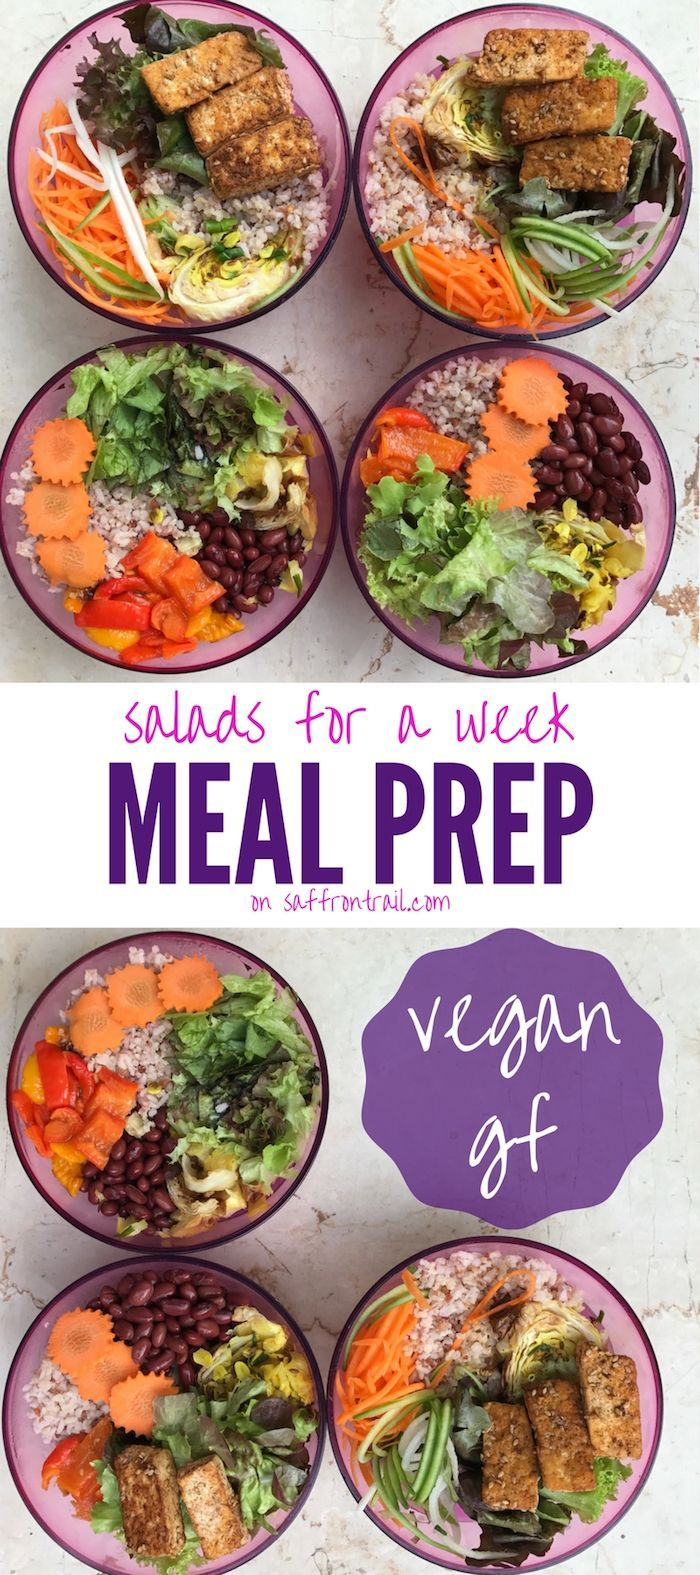 Vegan Meal Prep - - Vegetarian meal prep Meal Prep Ideas Vegan Salads for 1 week - Around an hour of work and you have a week's worth of healthy salads ready - vegan and gluten free too! Get all the necessary resources in this post. Vegetarian Meal Prep, Vegetarian Recipes, Cooking Recipes, Batch Cooking, Vegan Meals, Vegetable Recipes, Pasta Recipes, Yummy Recipes, Chicken Recipes